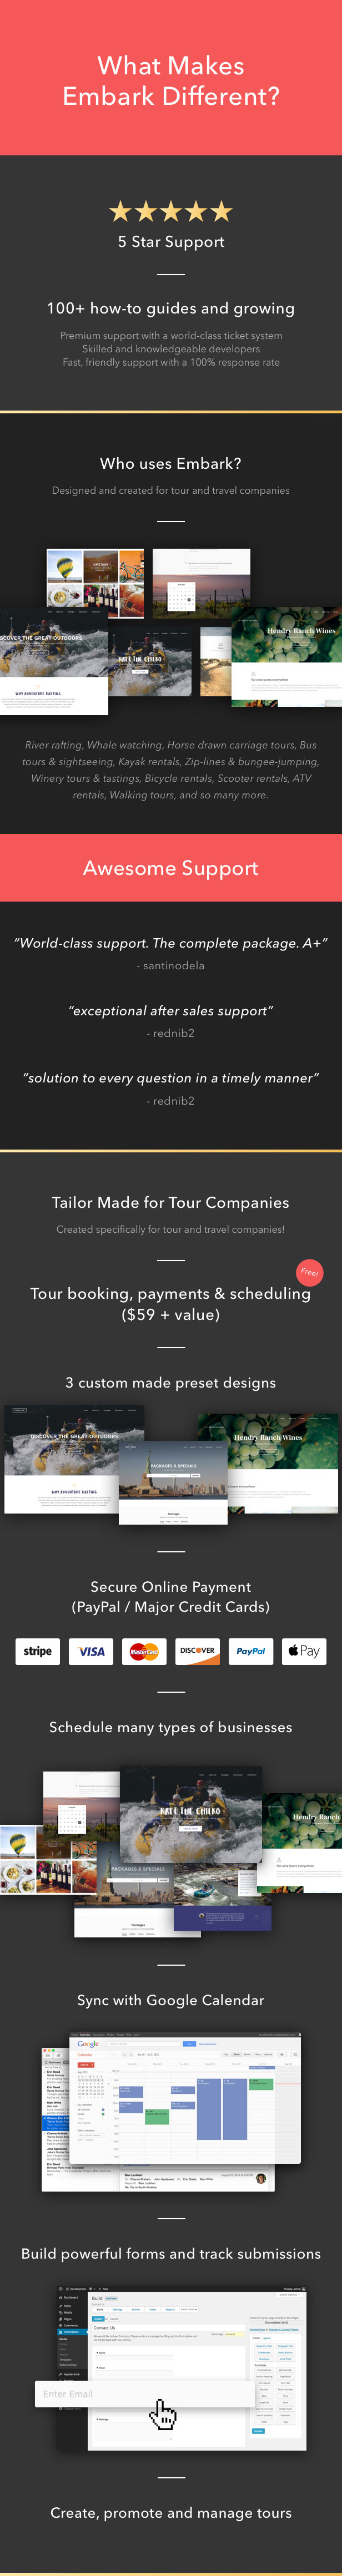 Tour Booking & Travel WordPress Theme - Embark - 2